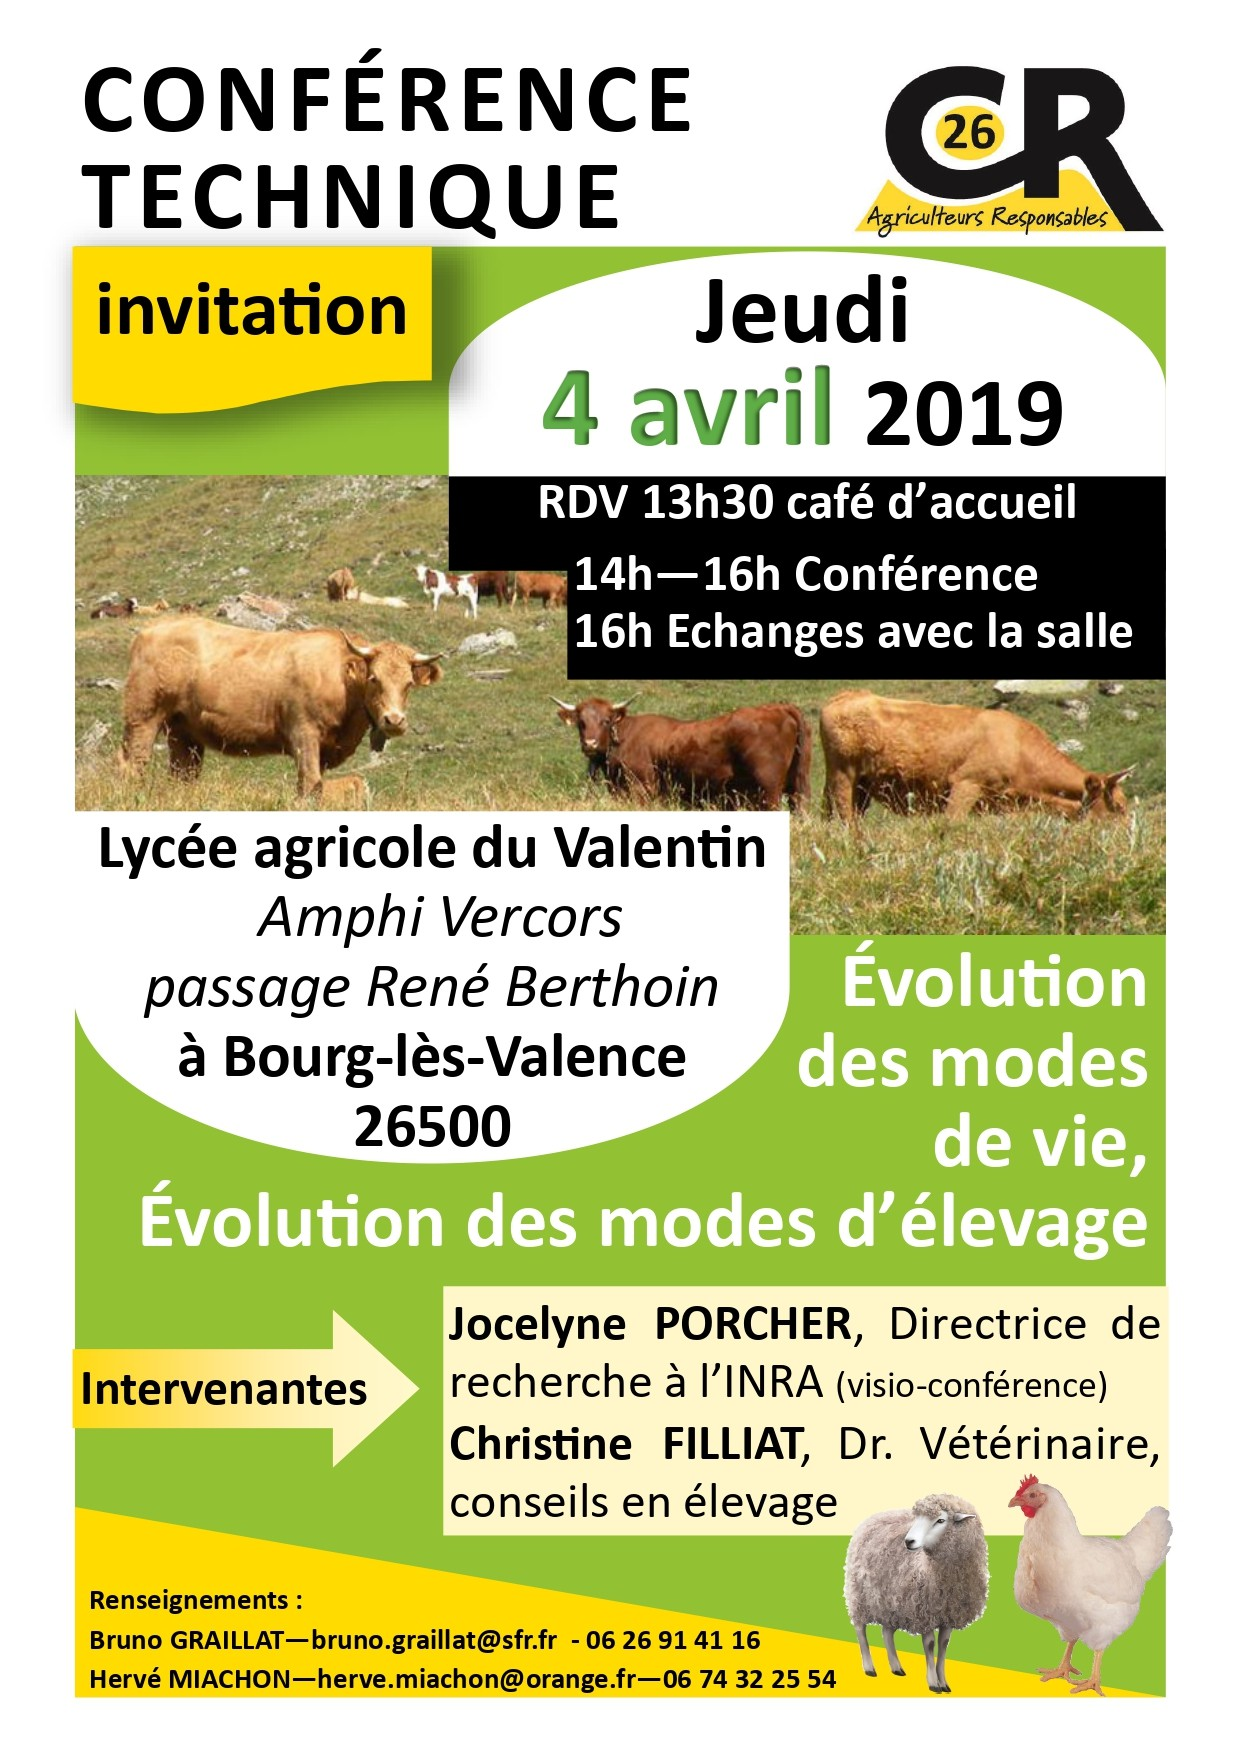 Flyer-conference-26-2019-elevage-jocelyne-porcher